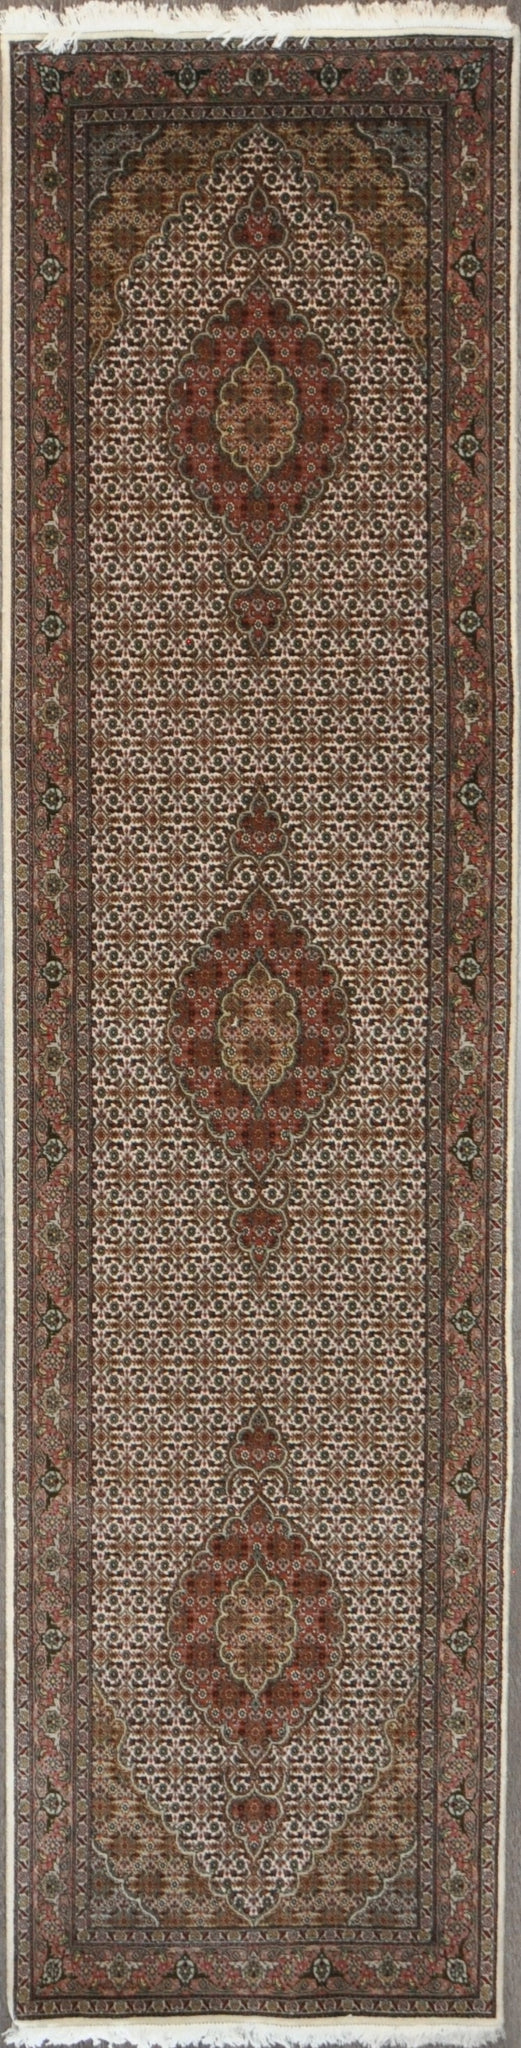 2.9x10.9 tabriz fish runner #62108